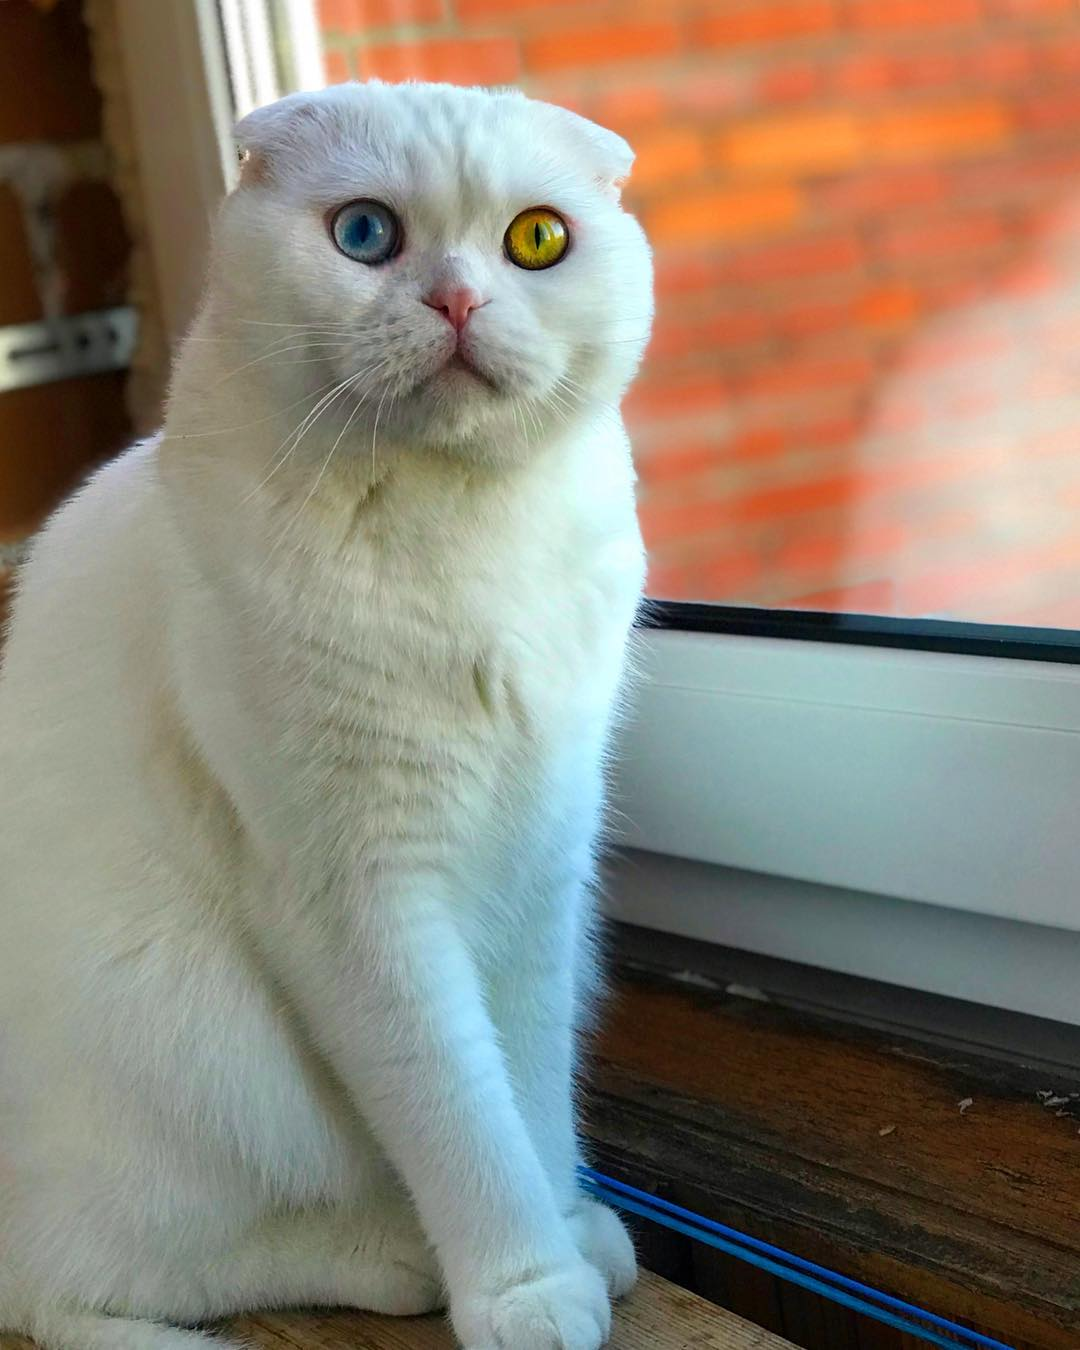 Scottish Fold Cat With Two Different Colored Eyes Has Left the Internet Stunned